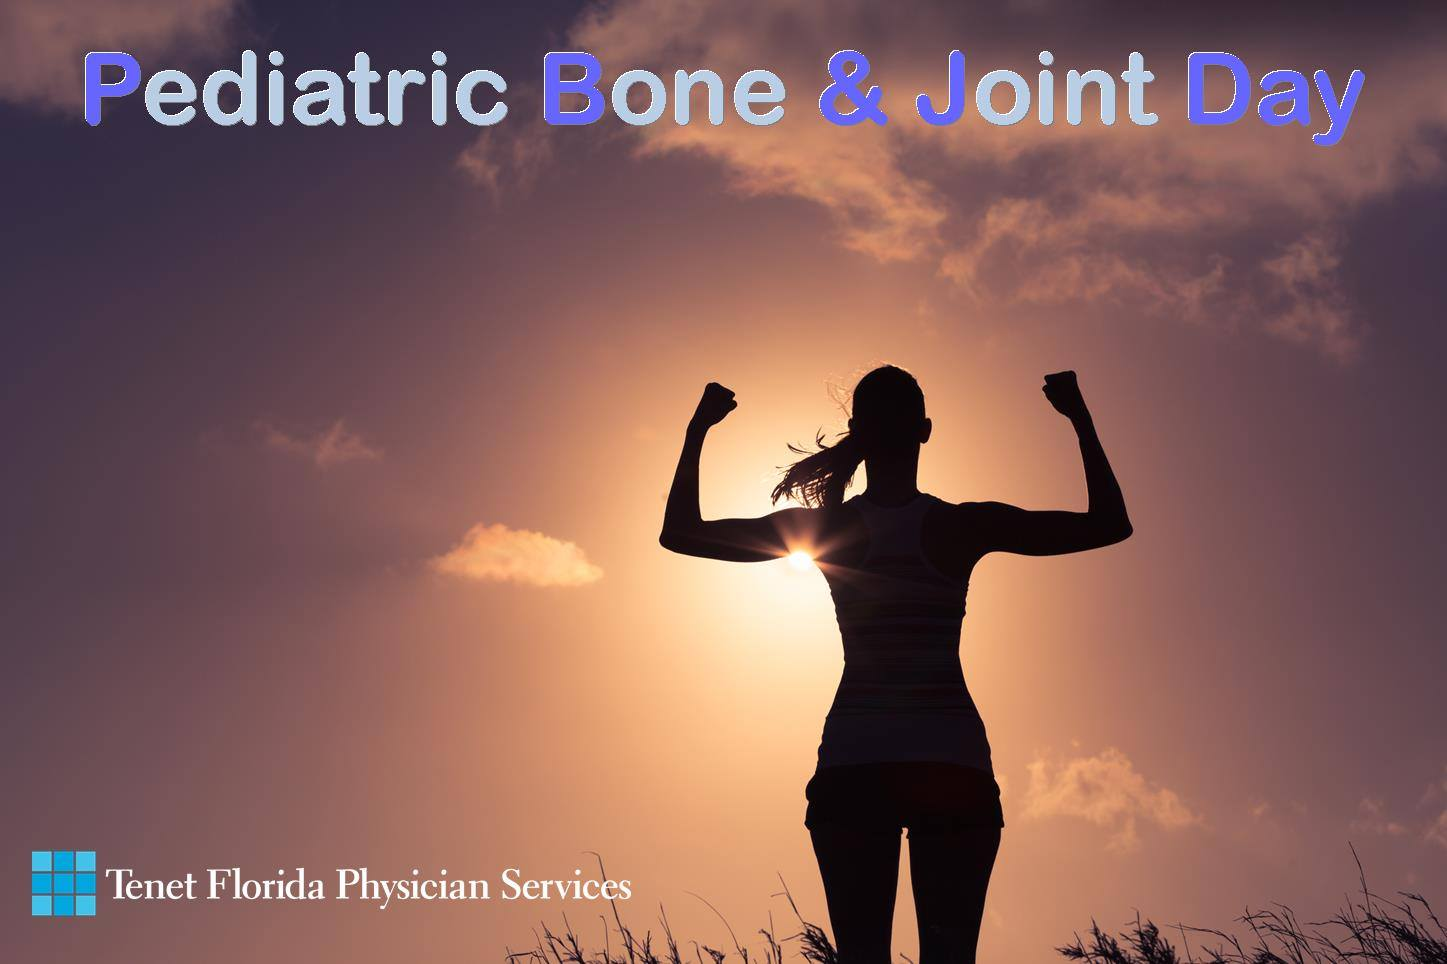 World Pediatric Bone and Joint Day Wishes Awesome Picture